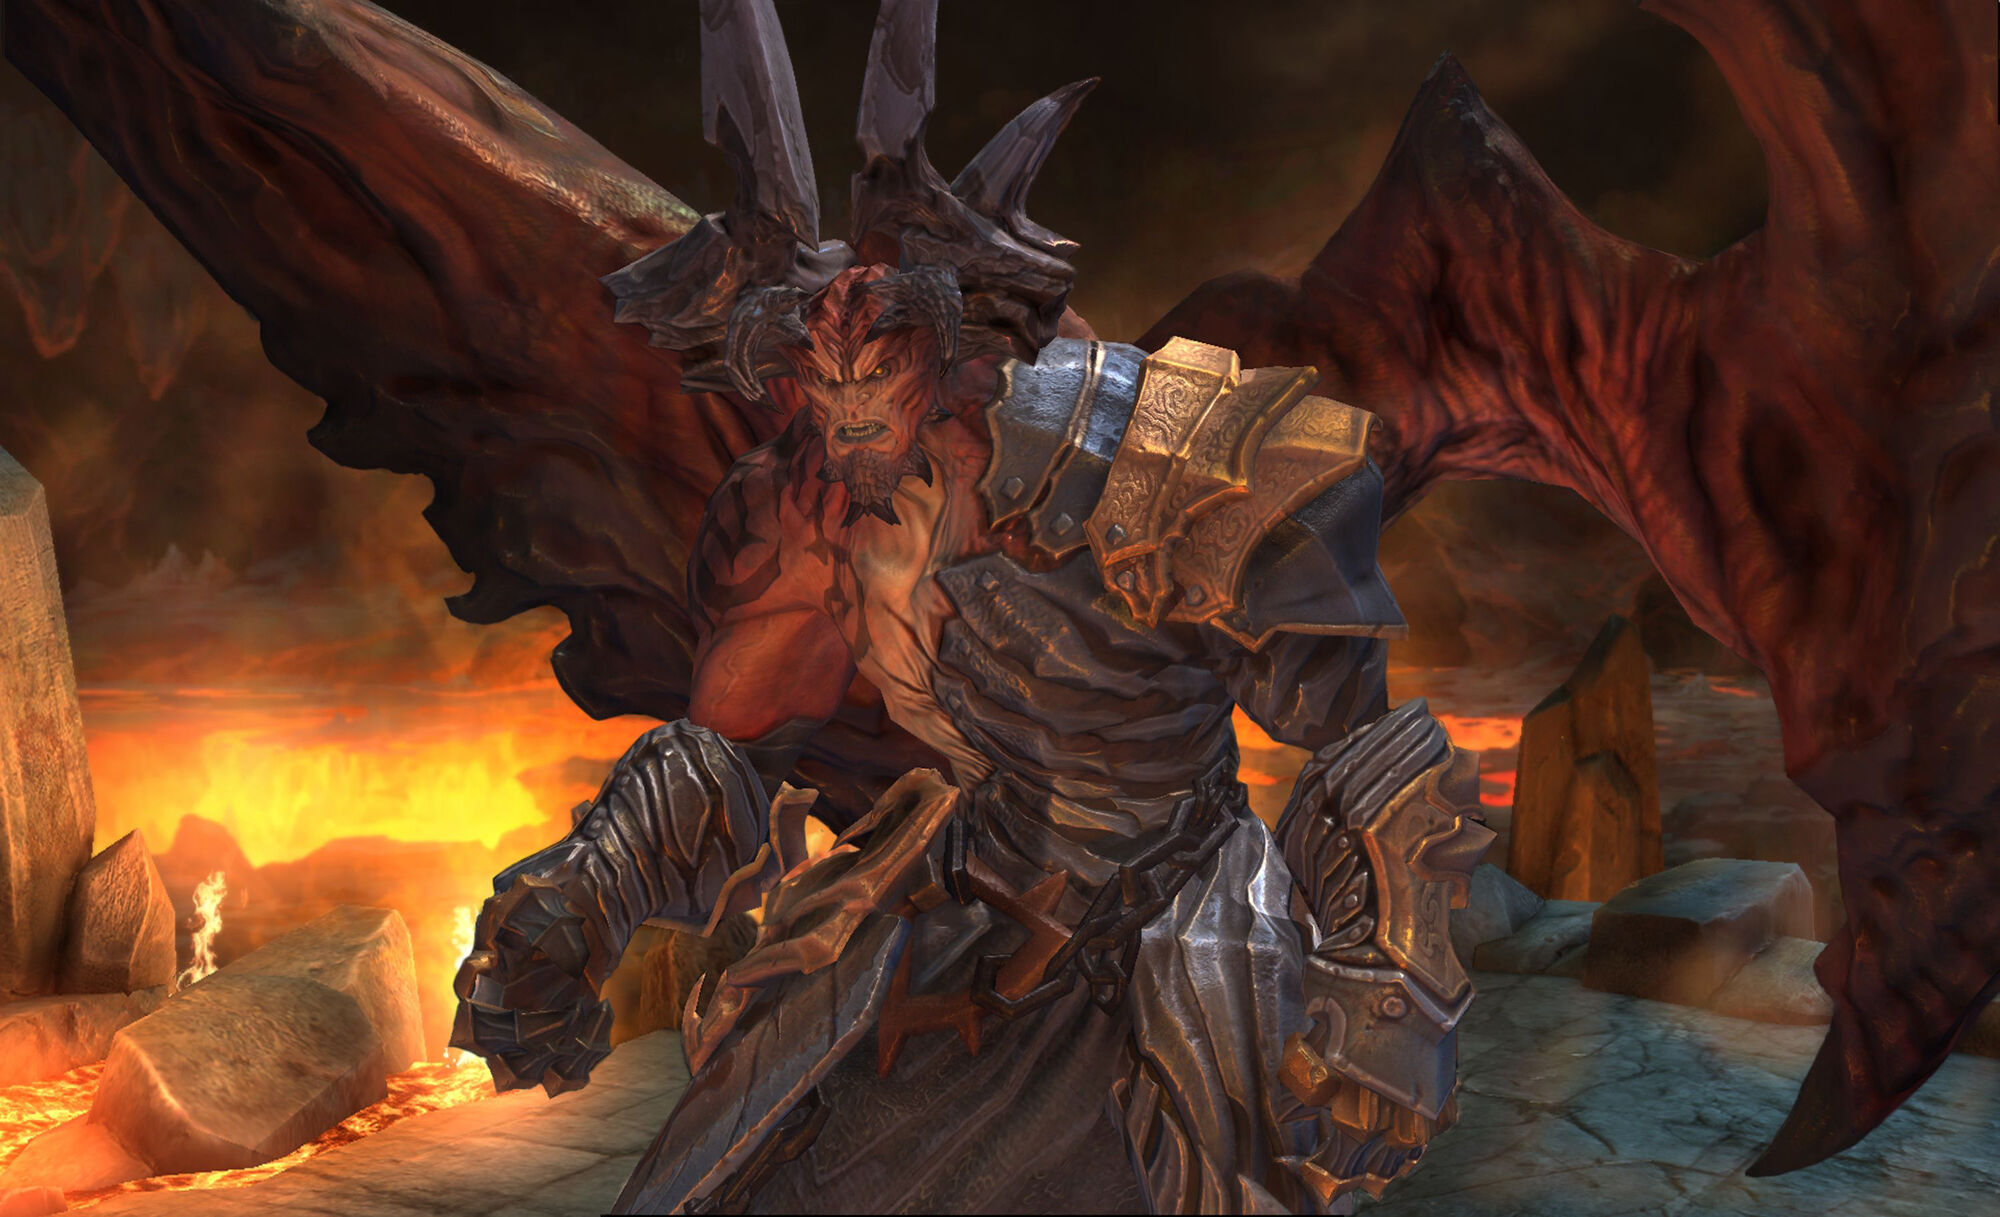 Samael | Darksiders Wiki | FANDOM powered by Wikia